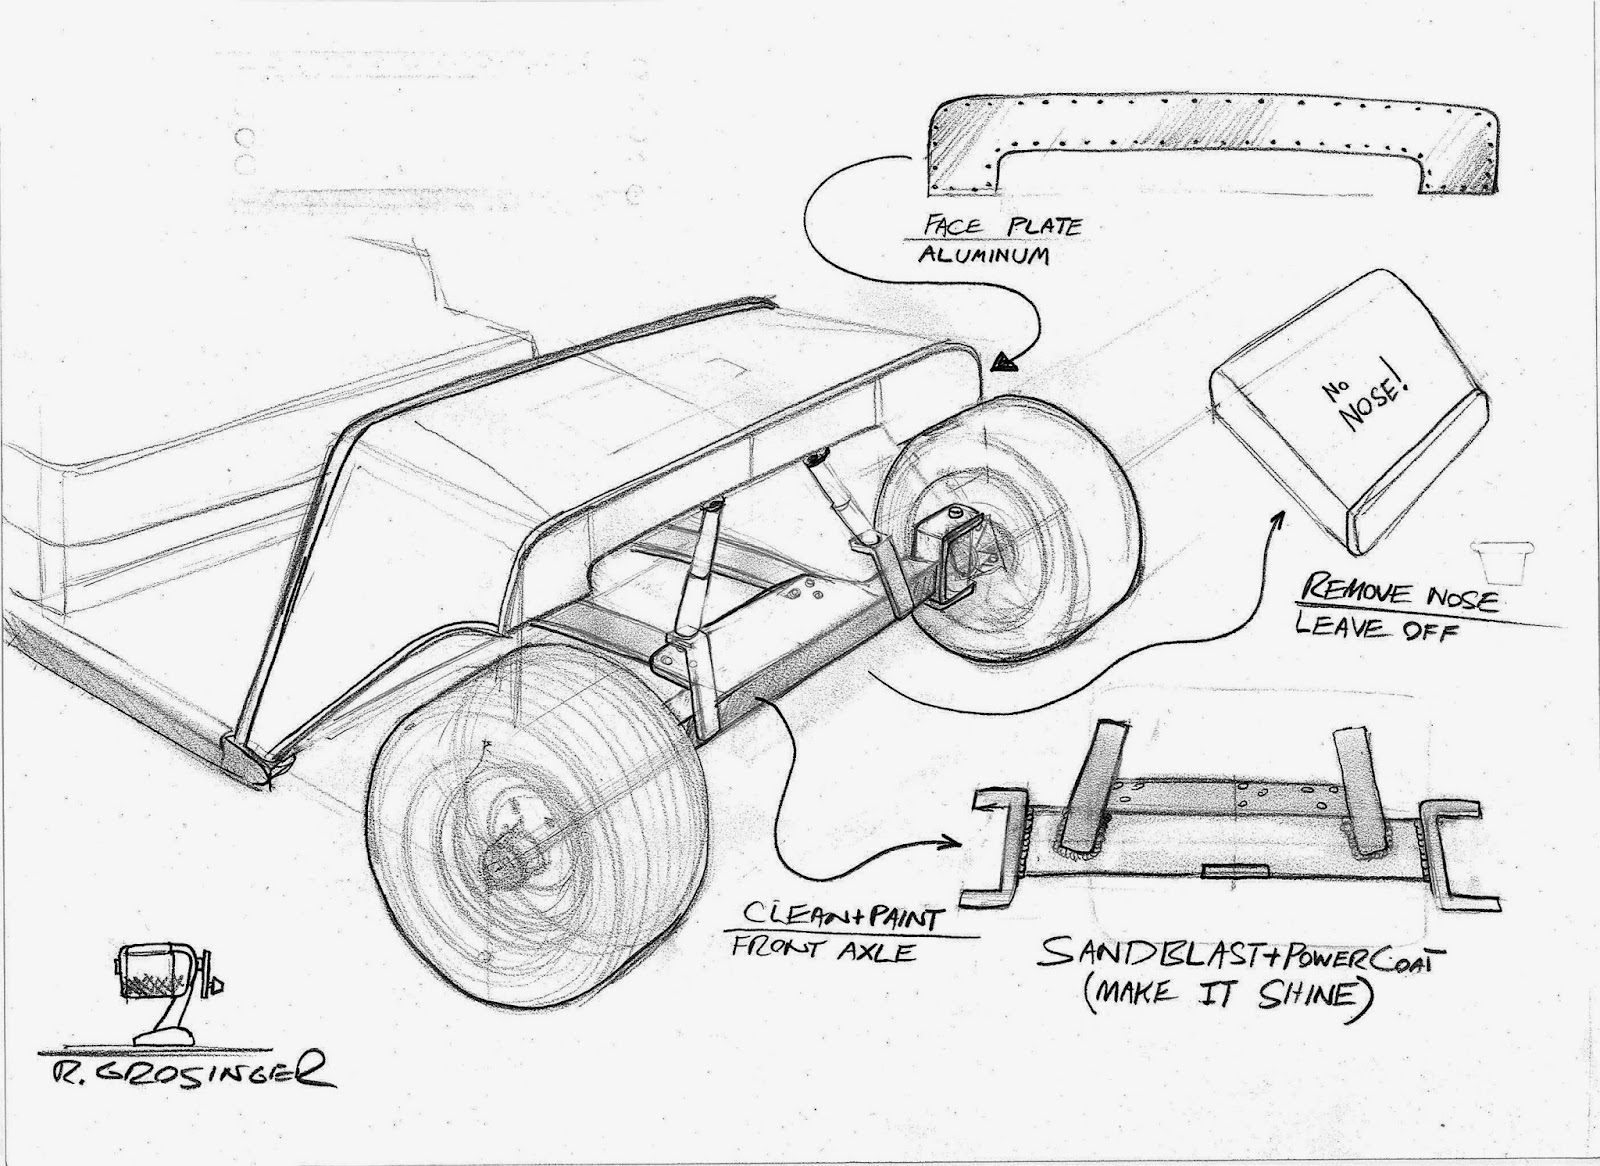 Ron grosinger 39 s vehicle design electric wheelie golf cart for Golf cart plans